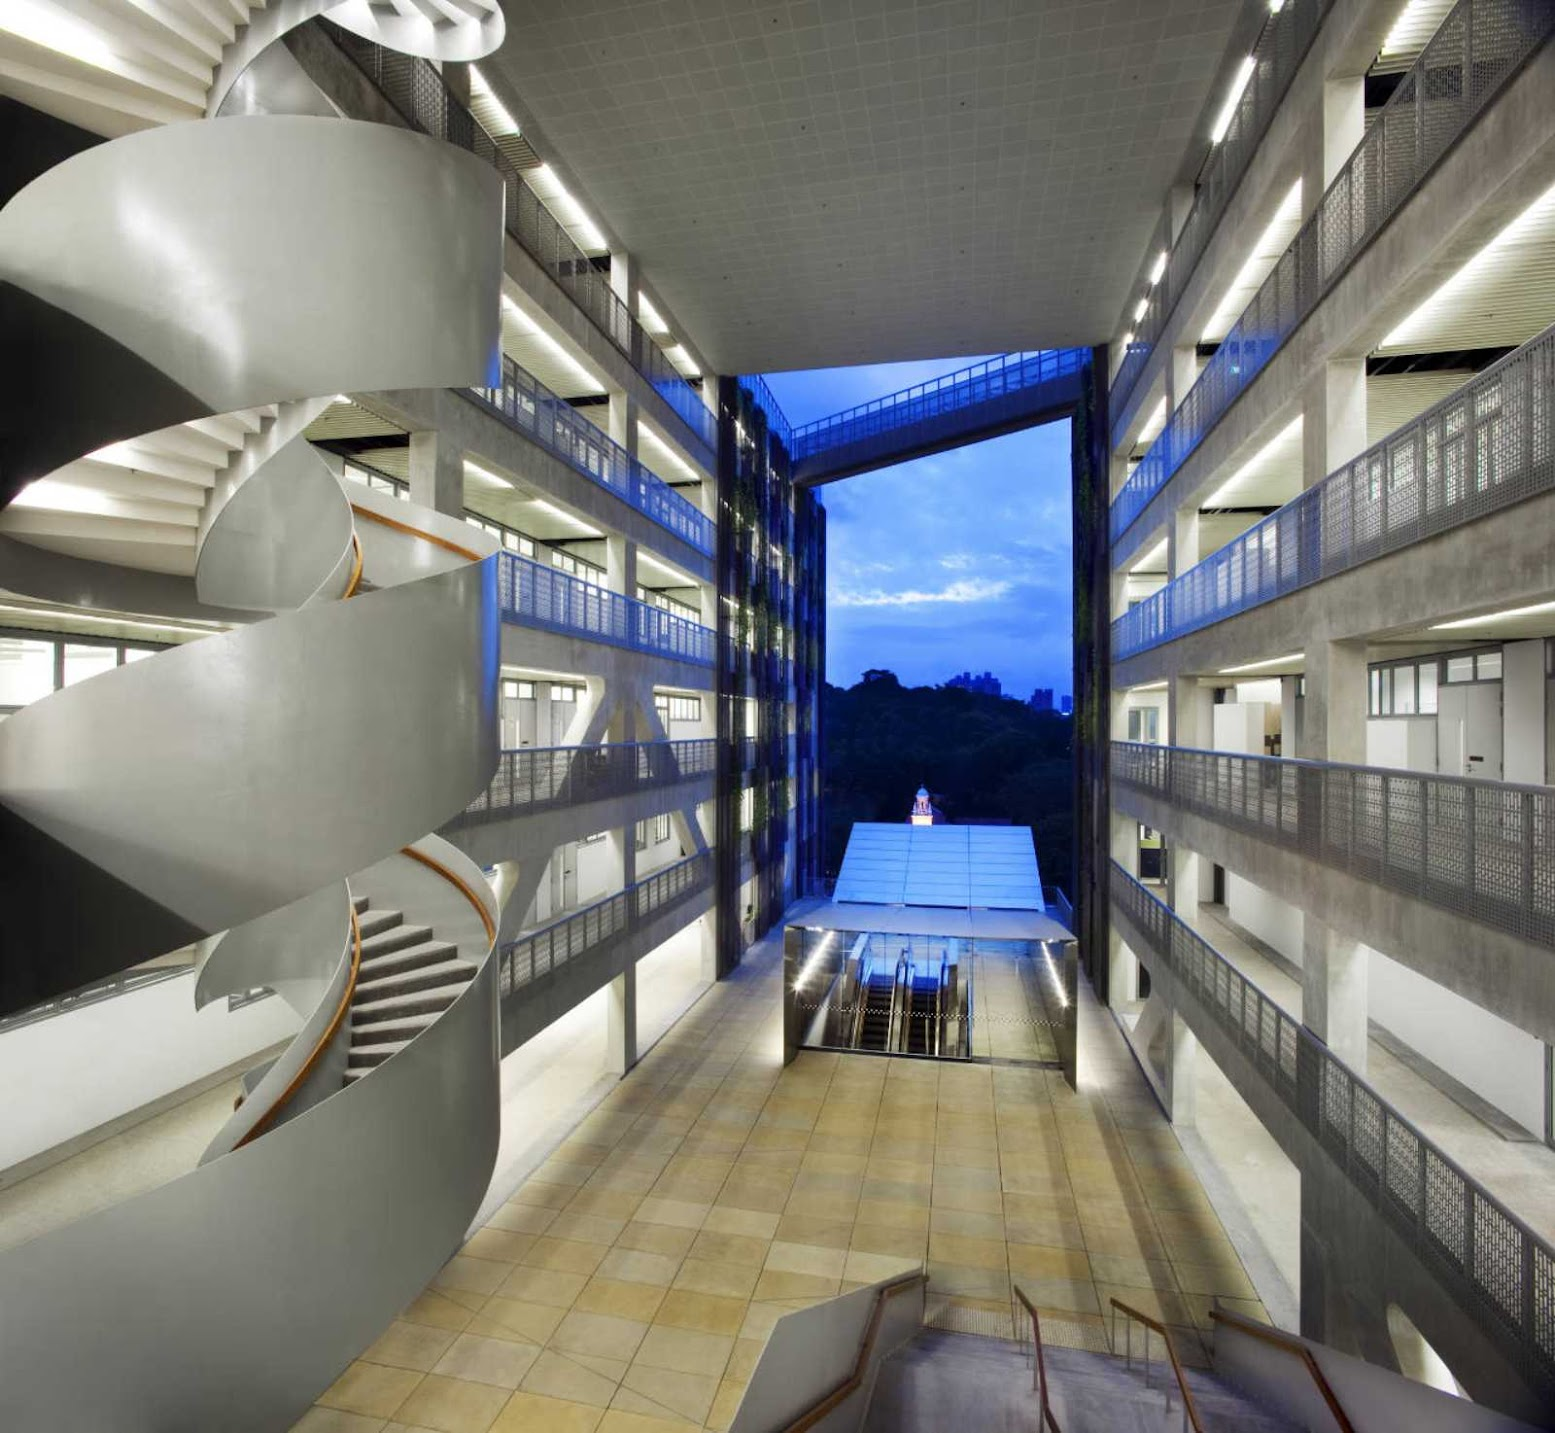 Singapore: [SCHOOL OF THE ARTS BY WOHA]